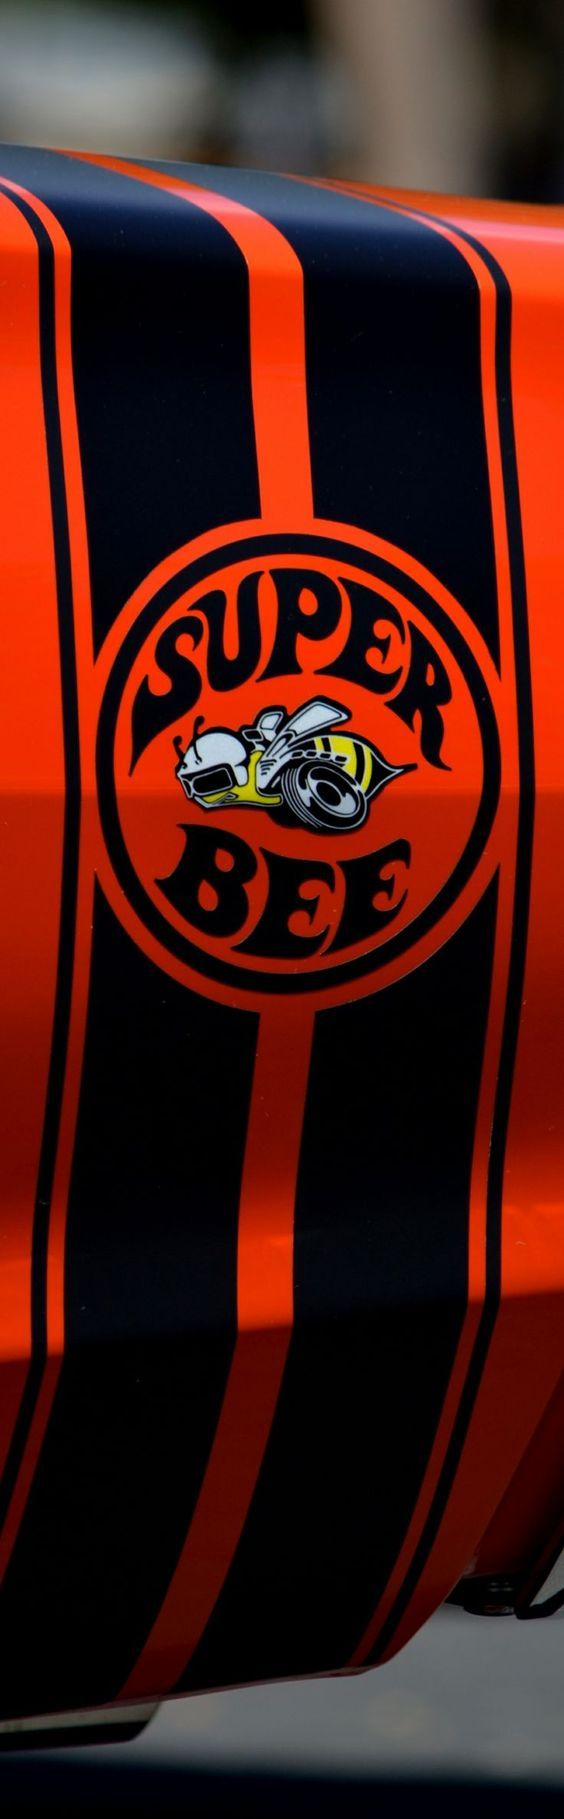 1971 Dodge Charger Super Bee Bumble Bee Stripe